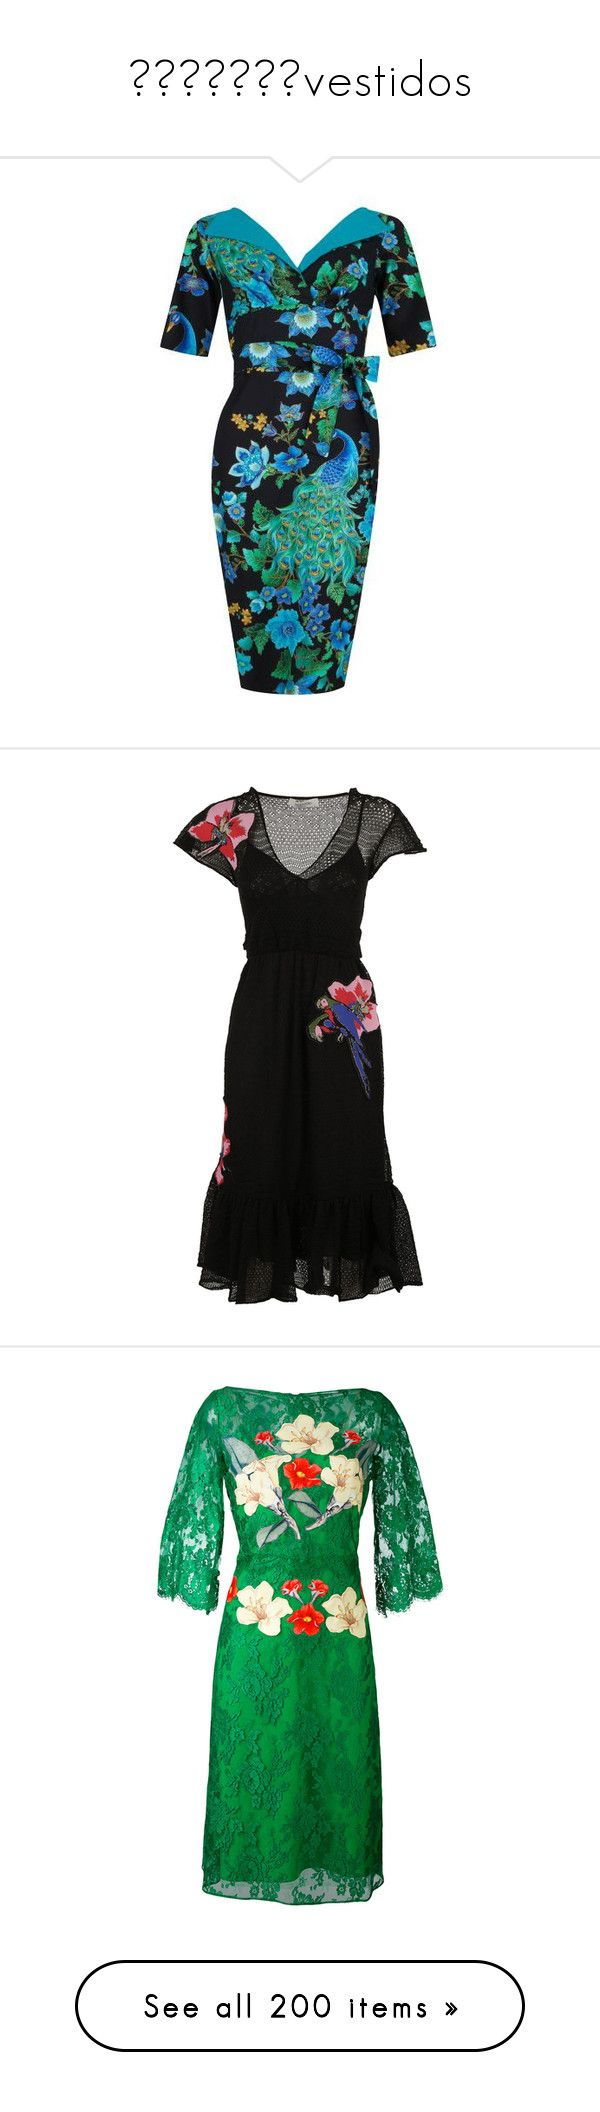 👗👗👗👗👗👗👗vestidos by georginalan on Polyvore featuring polyvore, women's fashion, clothing, dresses, pencil dresses, 3 4 length sleeve dress, 3/4 sleeve dresses, peacock feather dress, three quarter length sleeve dress, black, womenclothingdresses, valentino dress, flower embroidered dress, blossom dress, flower dress, v neckline dress, green, lace dress, green lace cocktail dress, floral print dress, floral dresses, floral pattern dress, mirrored dress, mirror dresses, lacy dress…